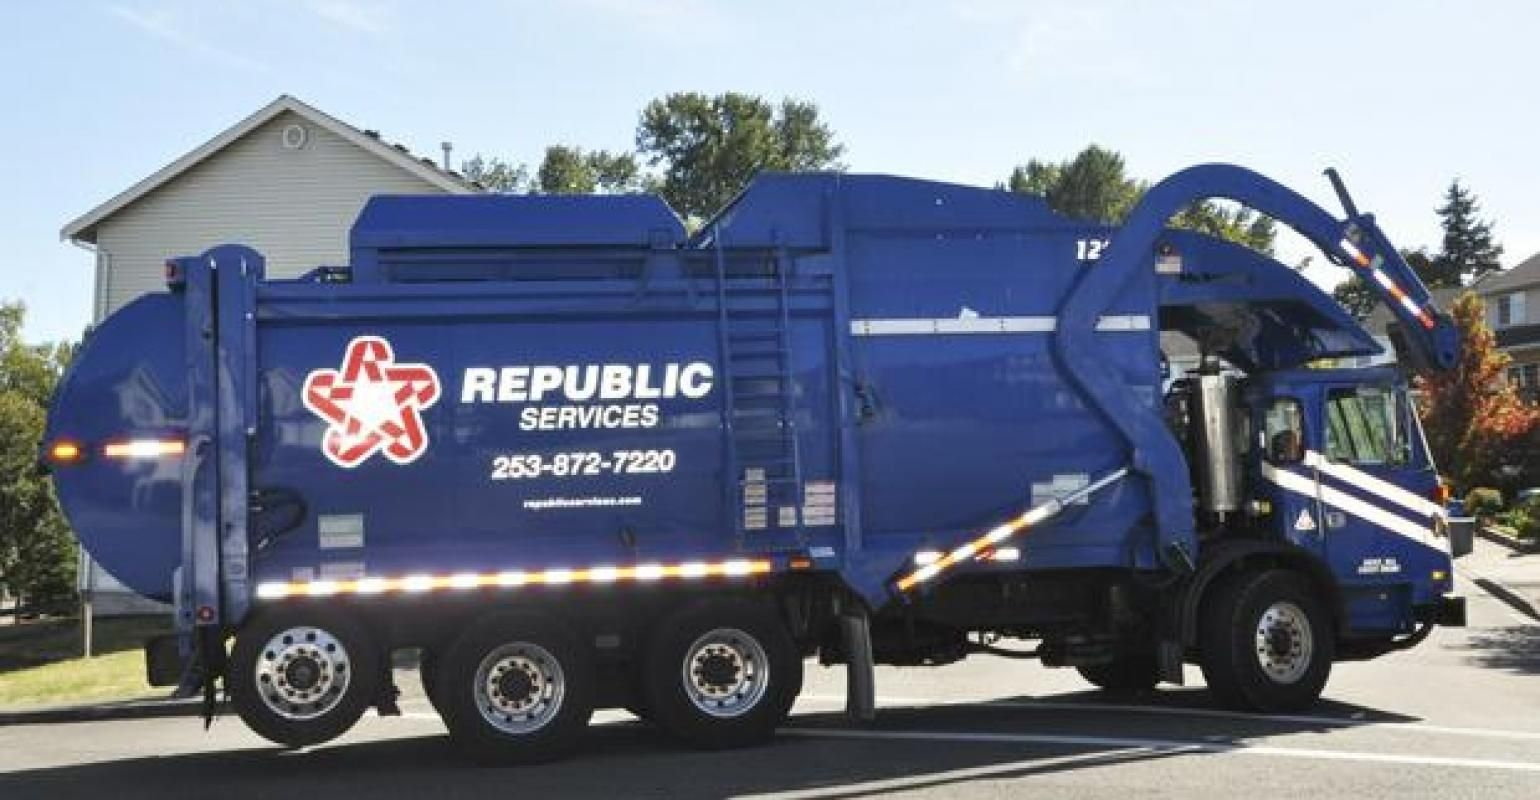 Getting Together For The Future Of Fleet Safety: Republic